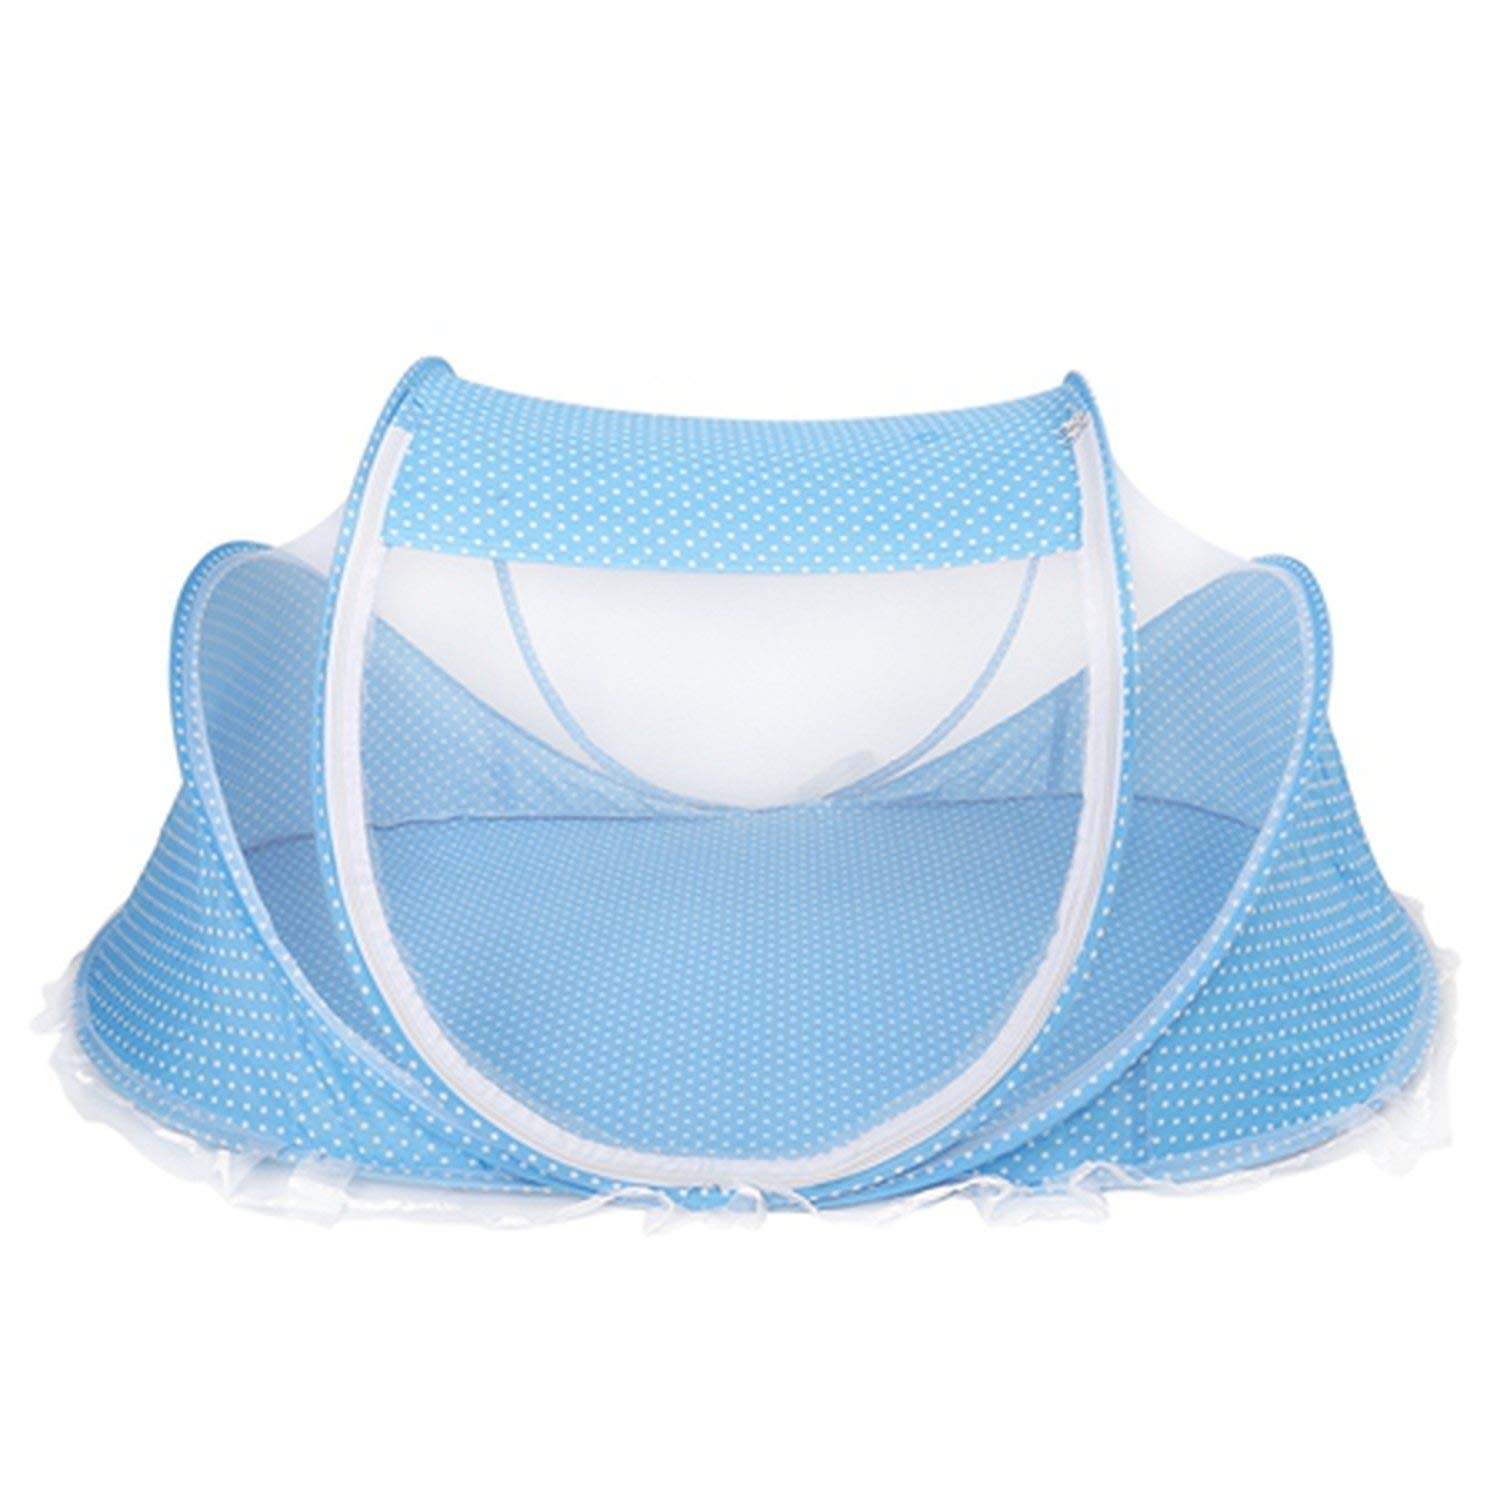 Foldable Mosquito Net Anti Bug Klamboe Crib Cradle Tent for Baby Infant Mosquiteiros para Camas,Blue,110X65X60Cm